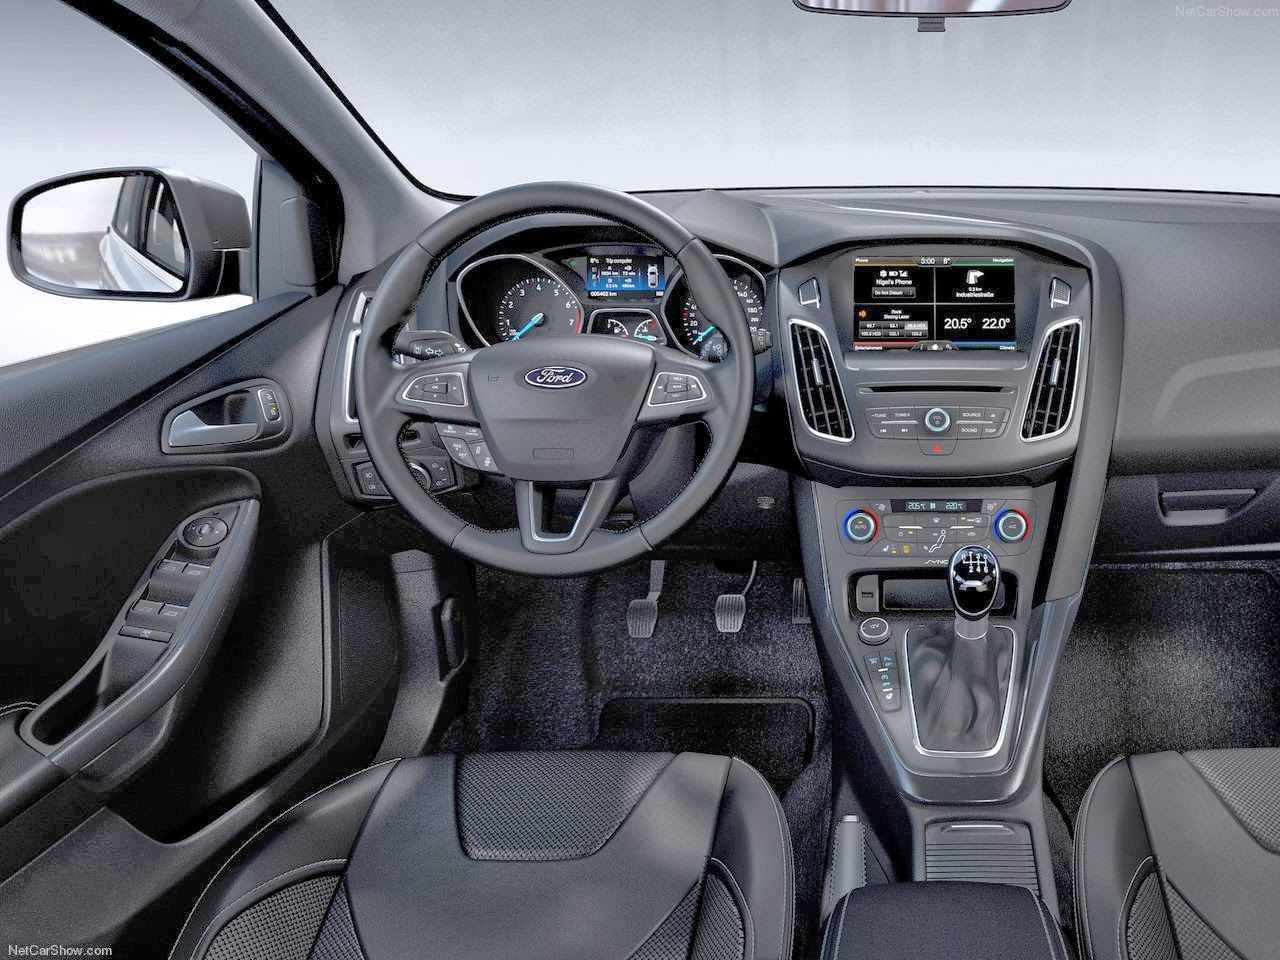 The New Ford Focus Elevates The Worldu0027s Best Selling Nameplate With A  Bolder, More Emotive Exterior Design, A Finely Crafted, Intuitive New  Interior, ...